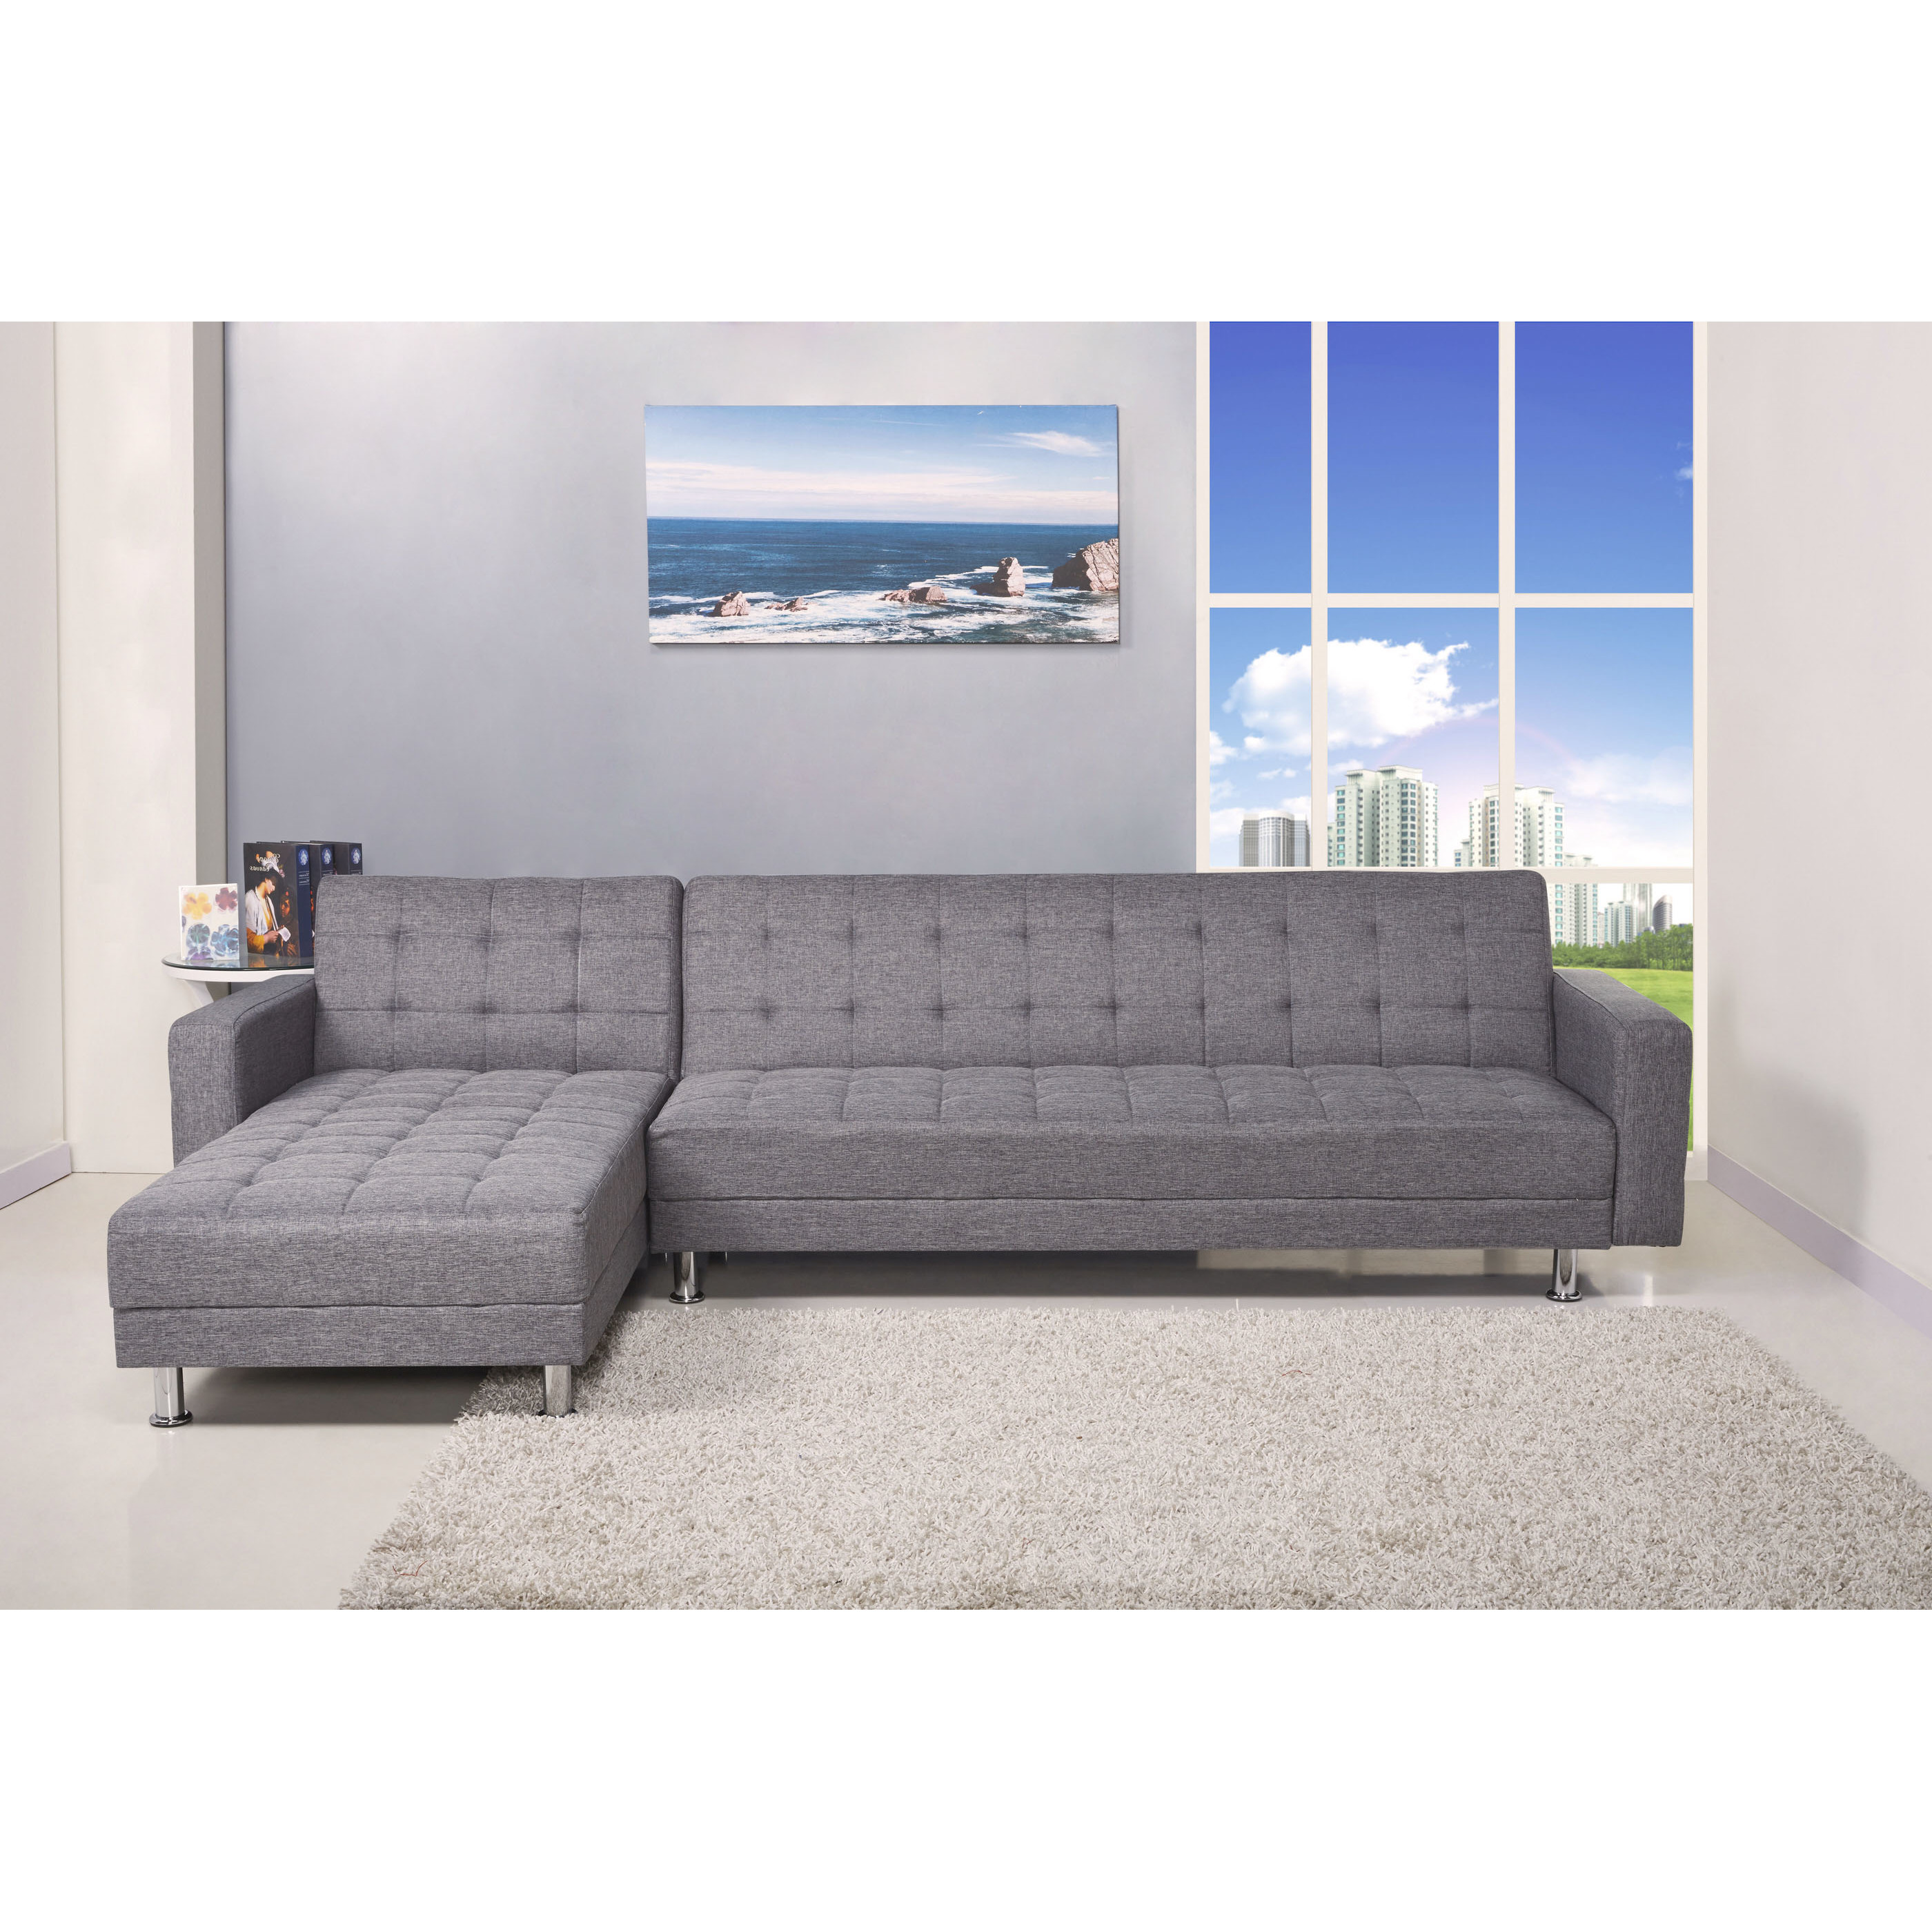 Red sectional sleeper sofa | Hawk Haven